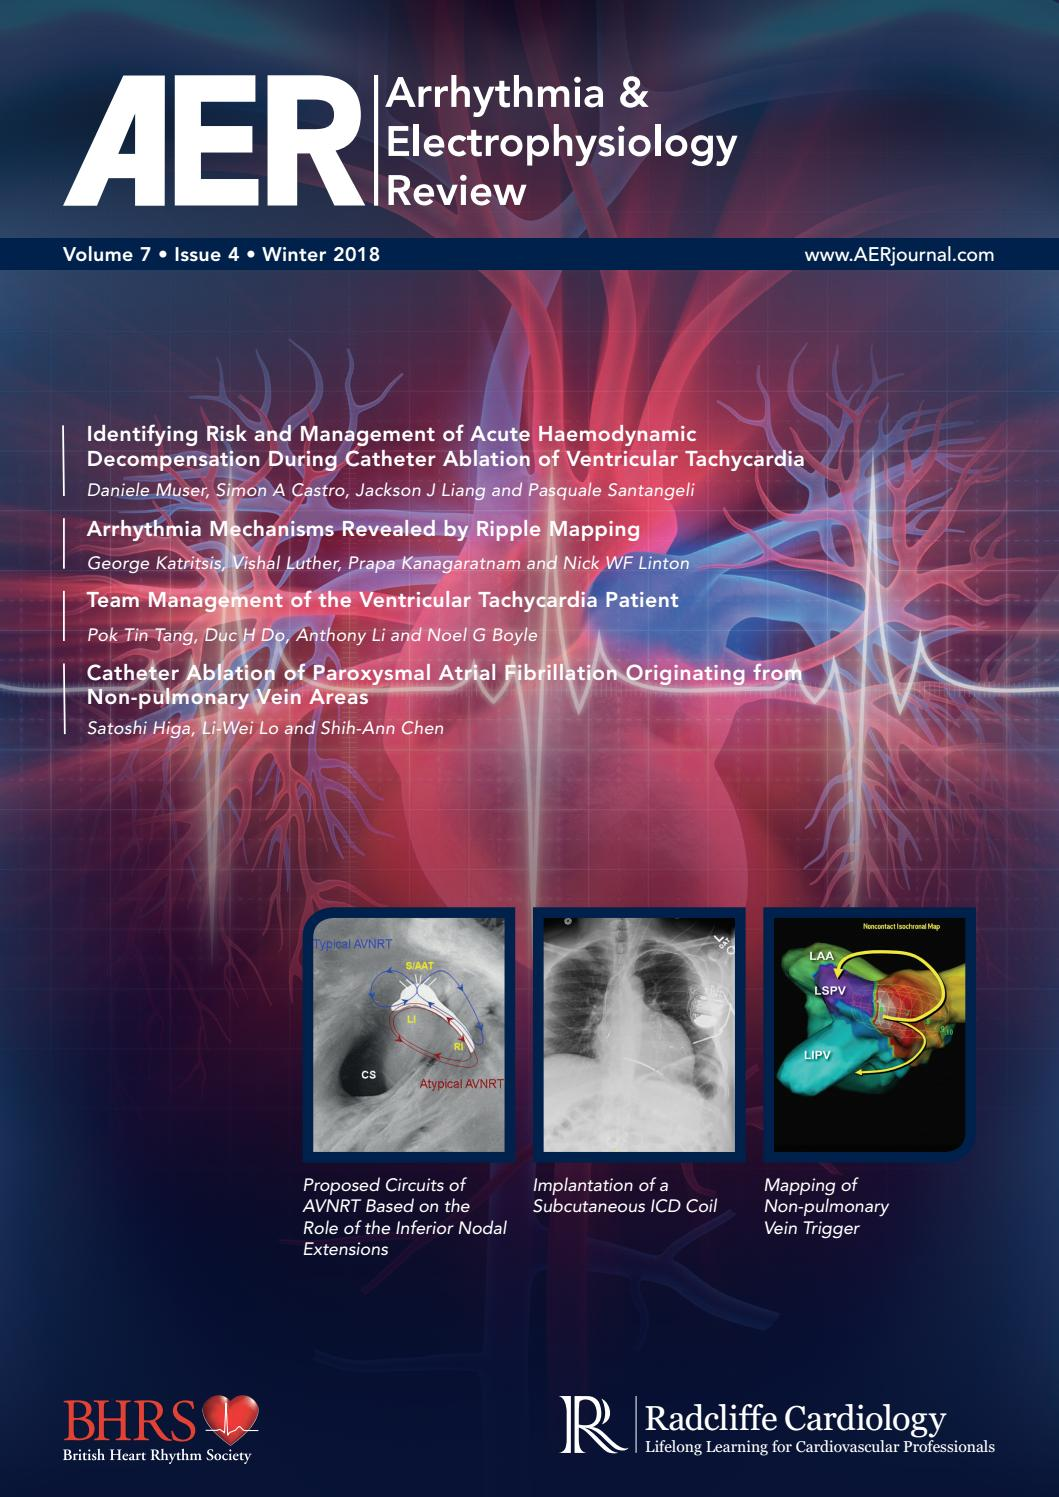 AER 7 4 by Radcliffe Cardiology - issuu